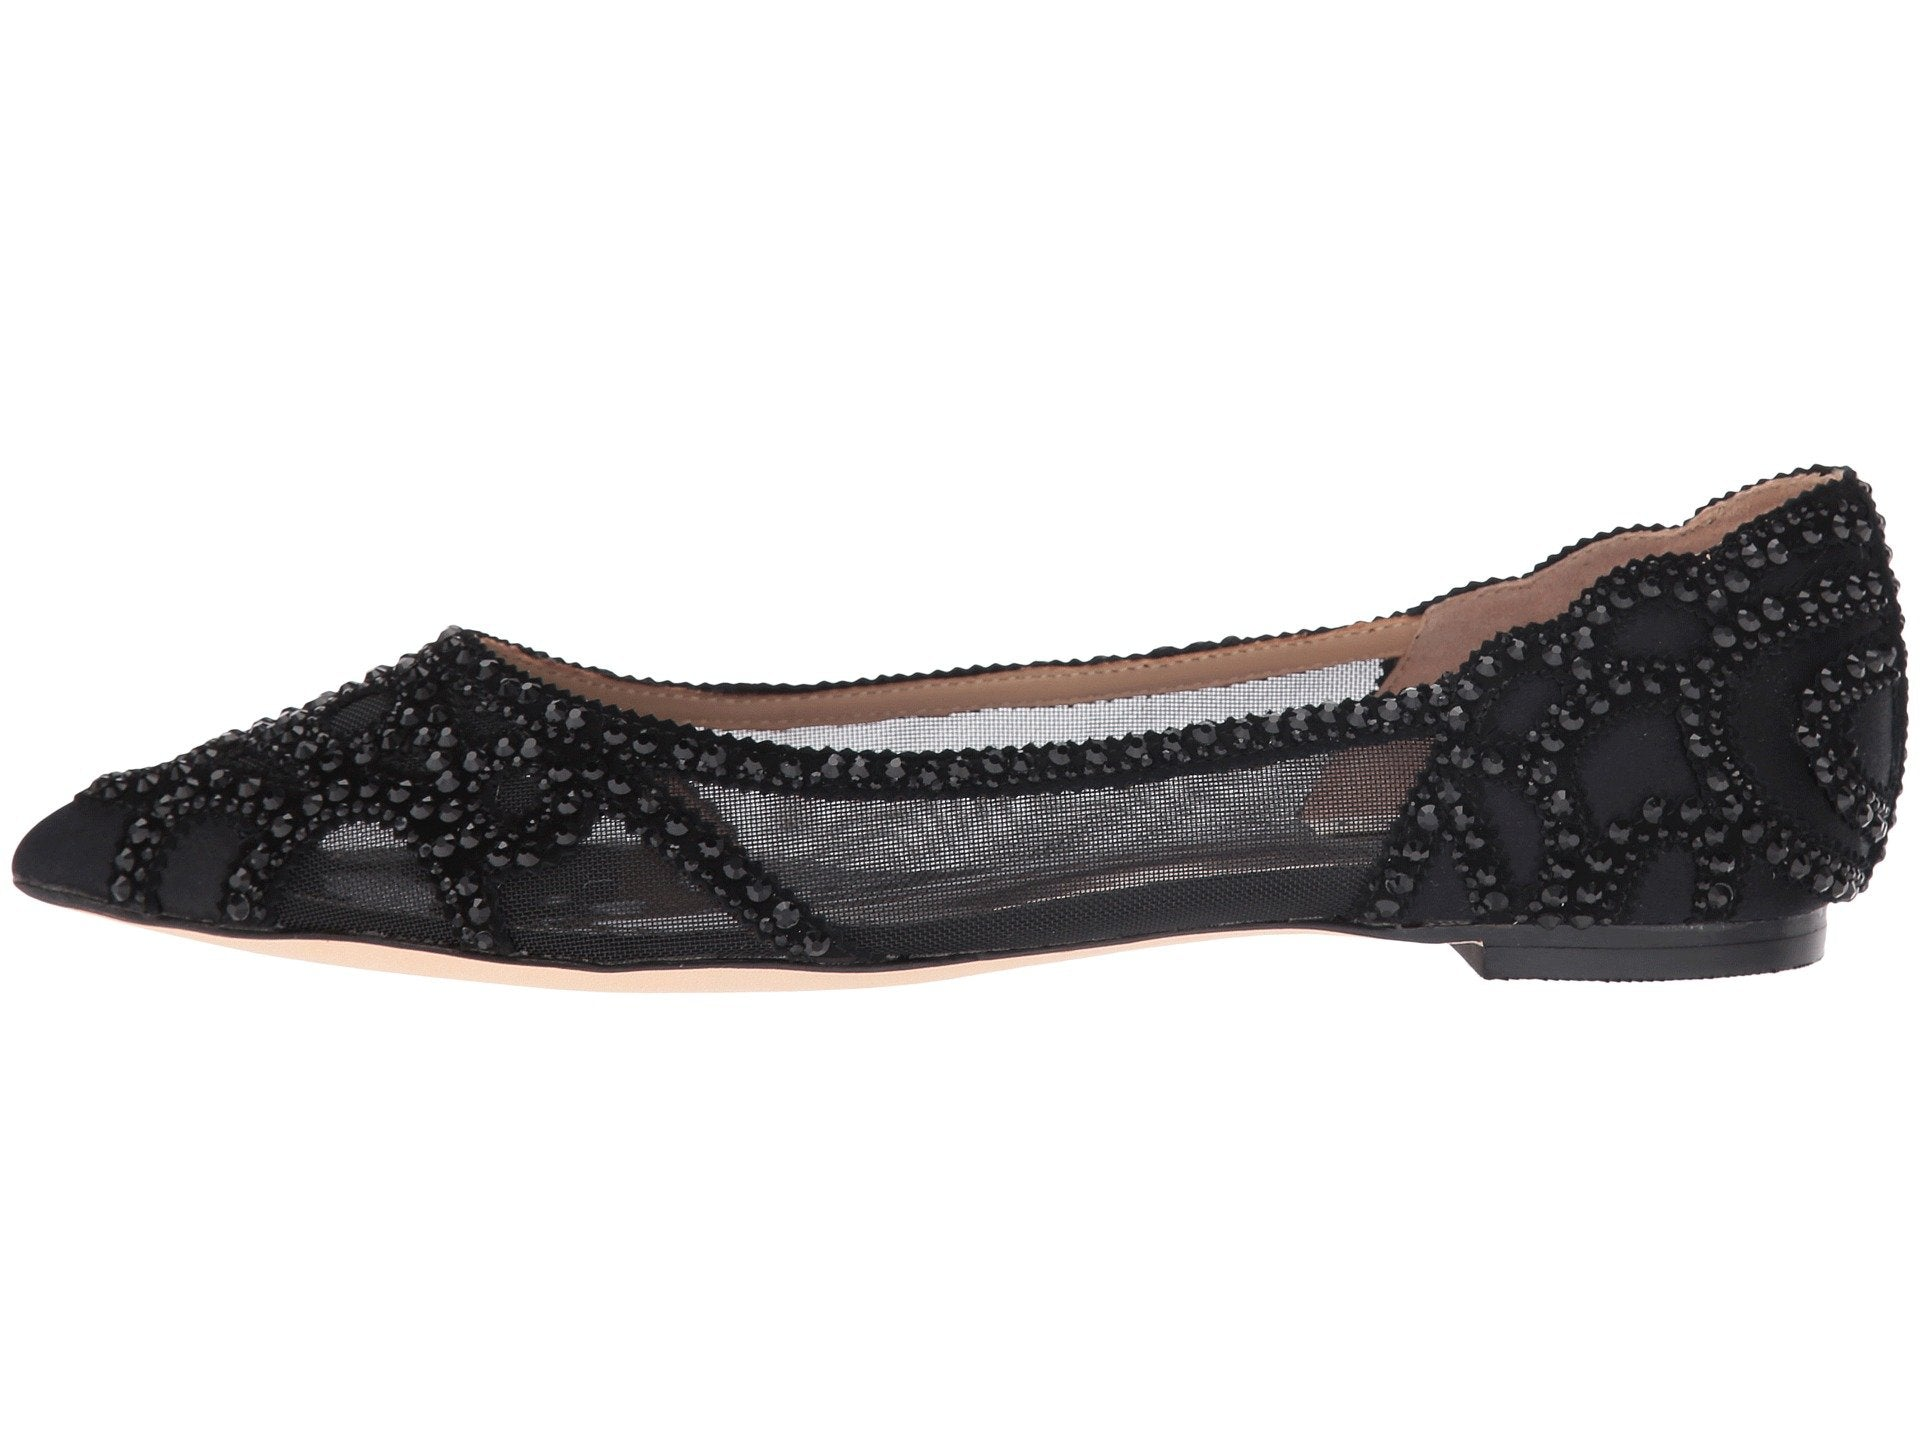 Badgley Mischka Women's Gigi Flats, Black, 5.5 B(M) US